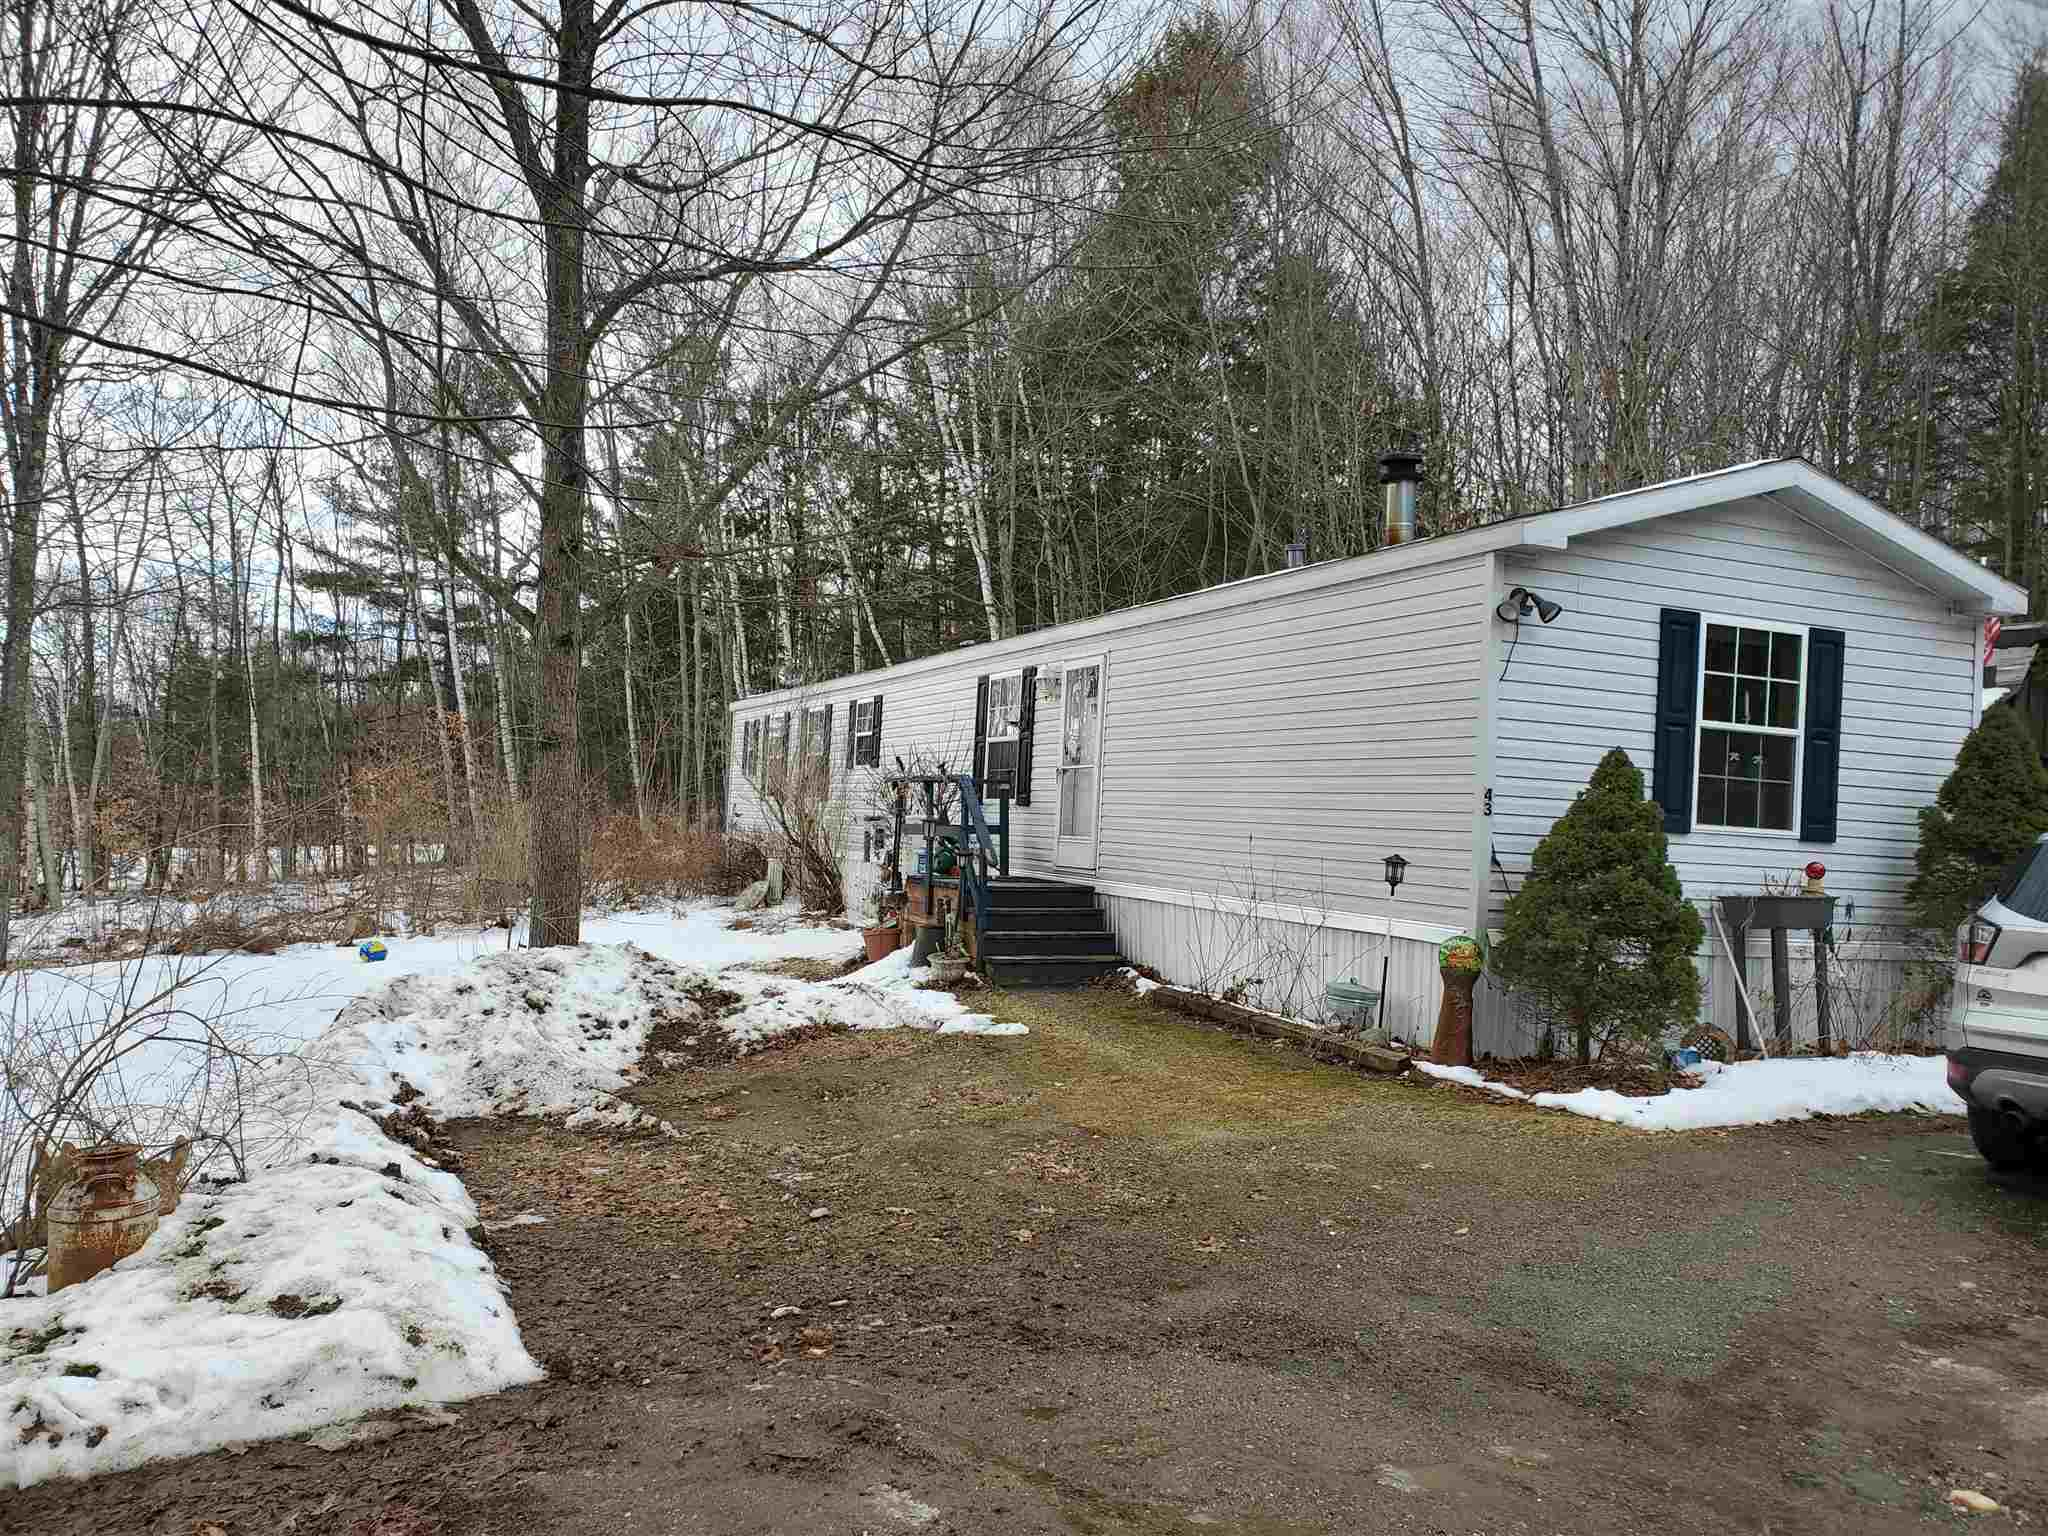 MLS 4792138: 43 Porter Road, Alstead NH